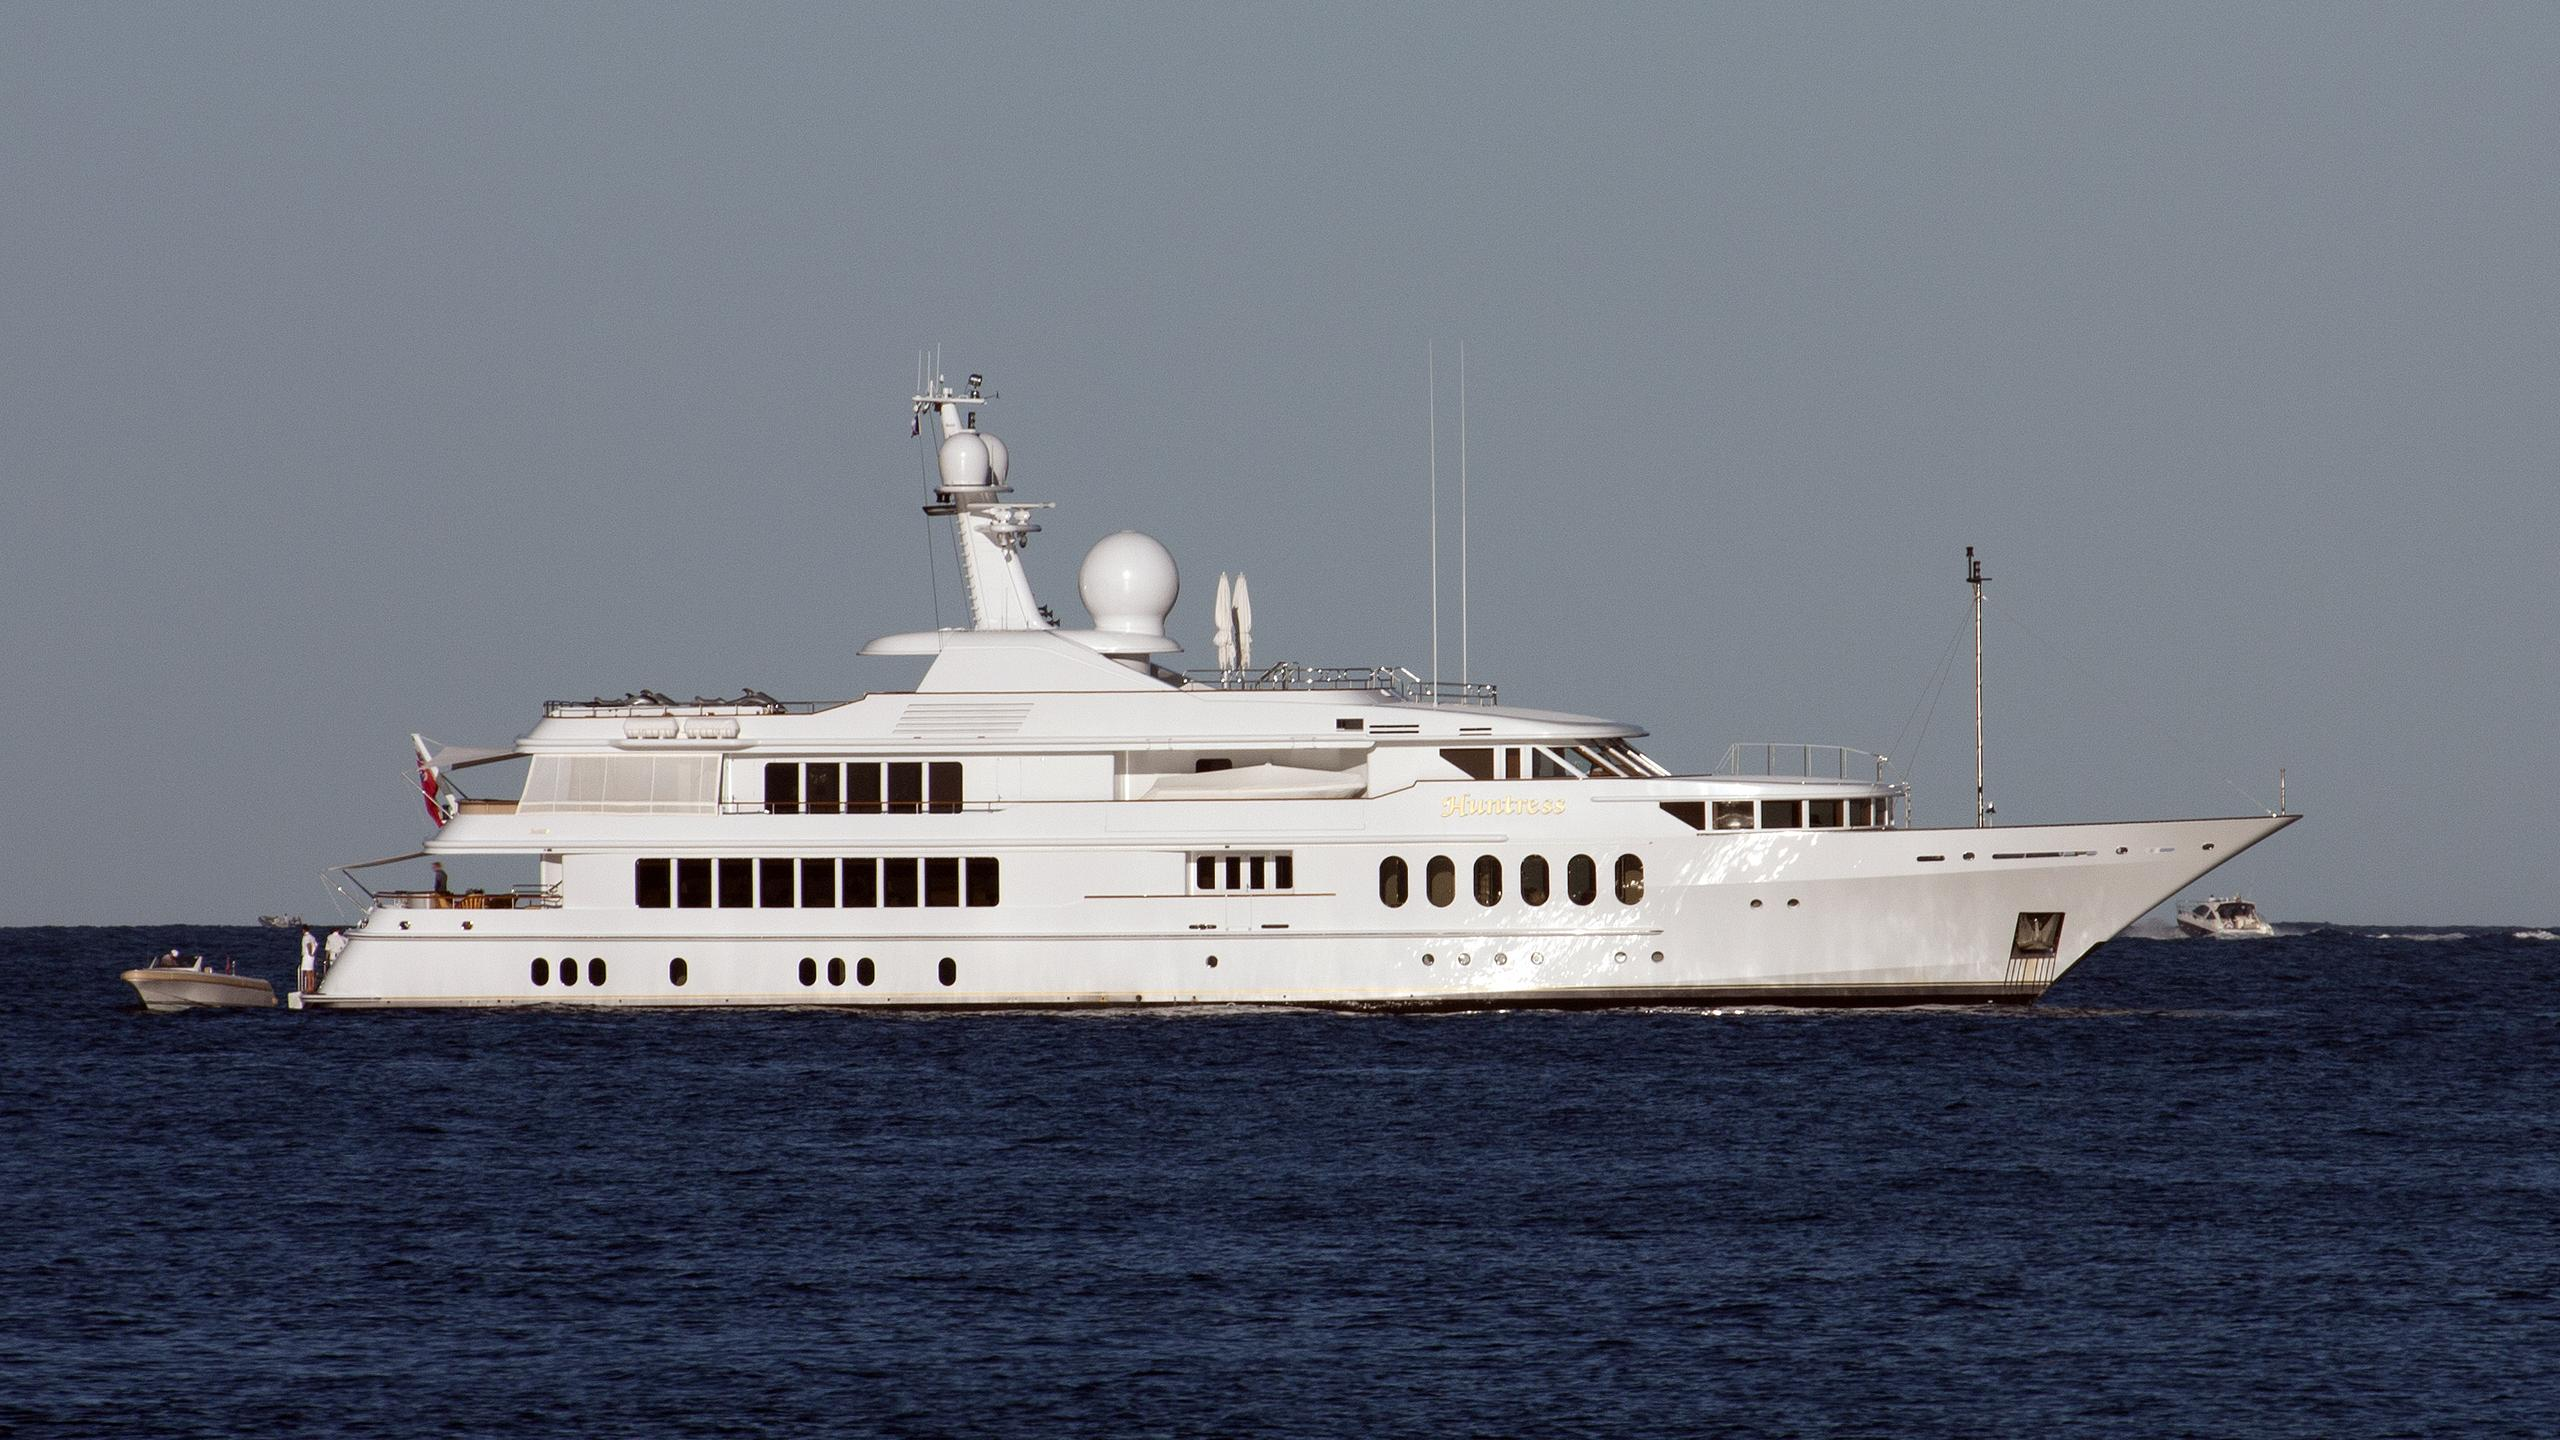 sea-huntress-huntress-motor-yacht-feadship-1997-55m-profile